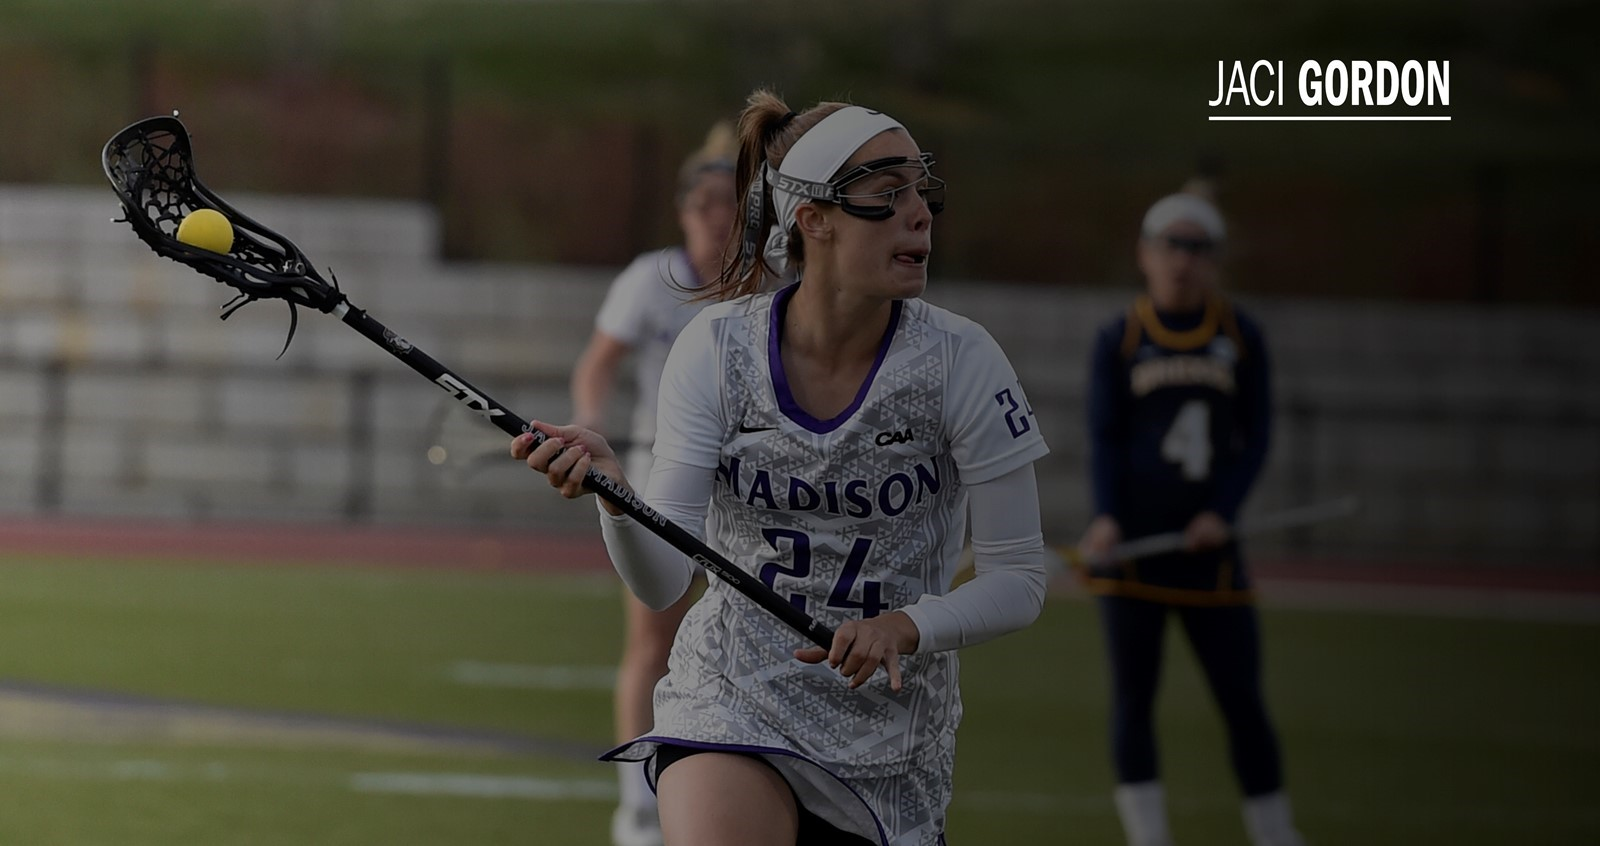 Women's Lacrosse, Student-Athlete Services: Gordon's Passion Paying Dividends on the Field and in the Classroom